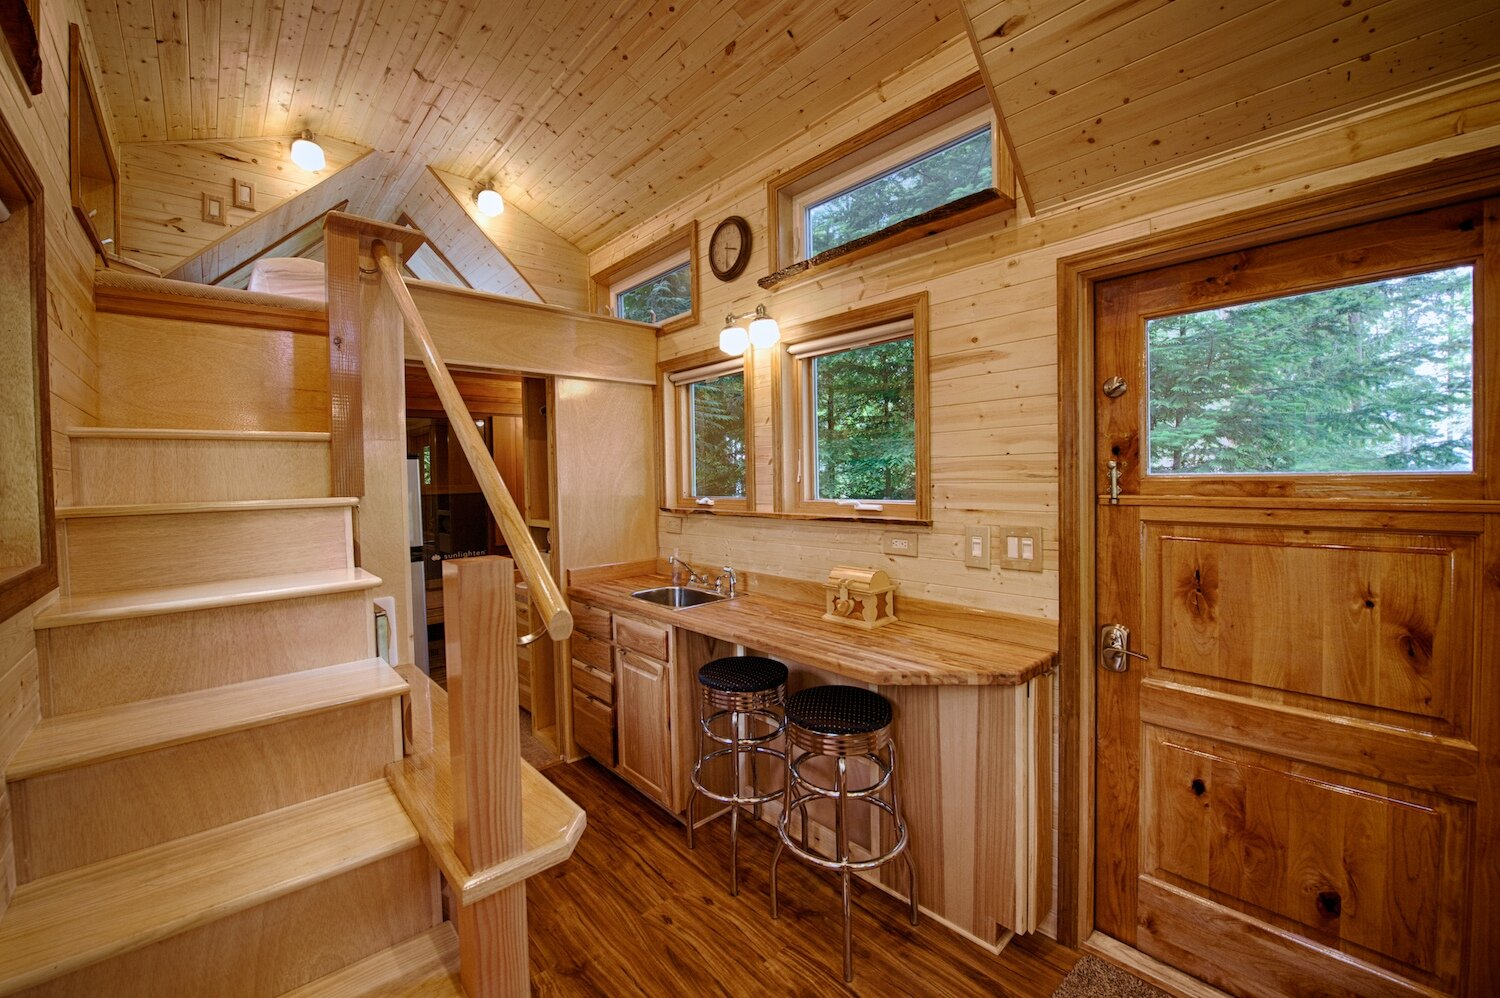 tiny house kerry alexander hope island cottages washington dining and loft